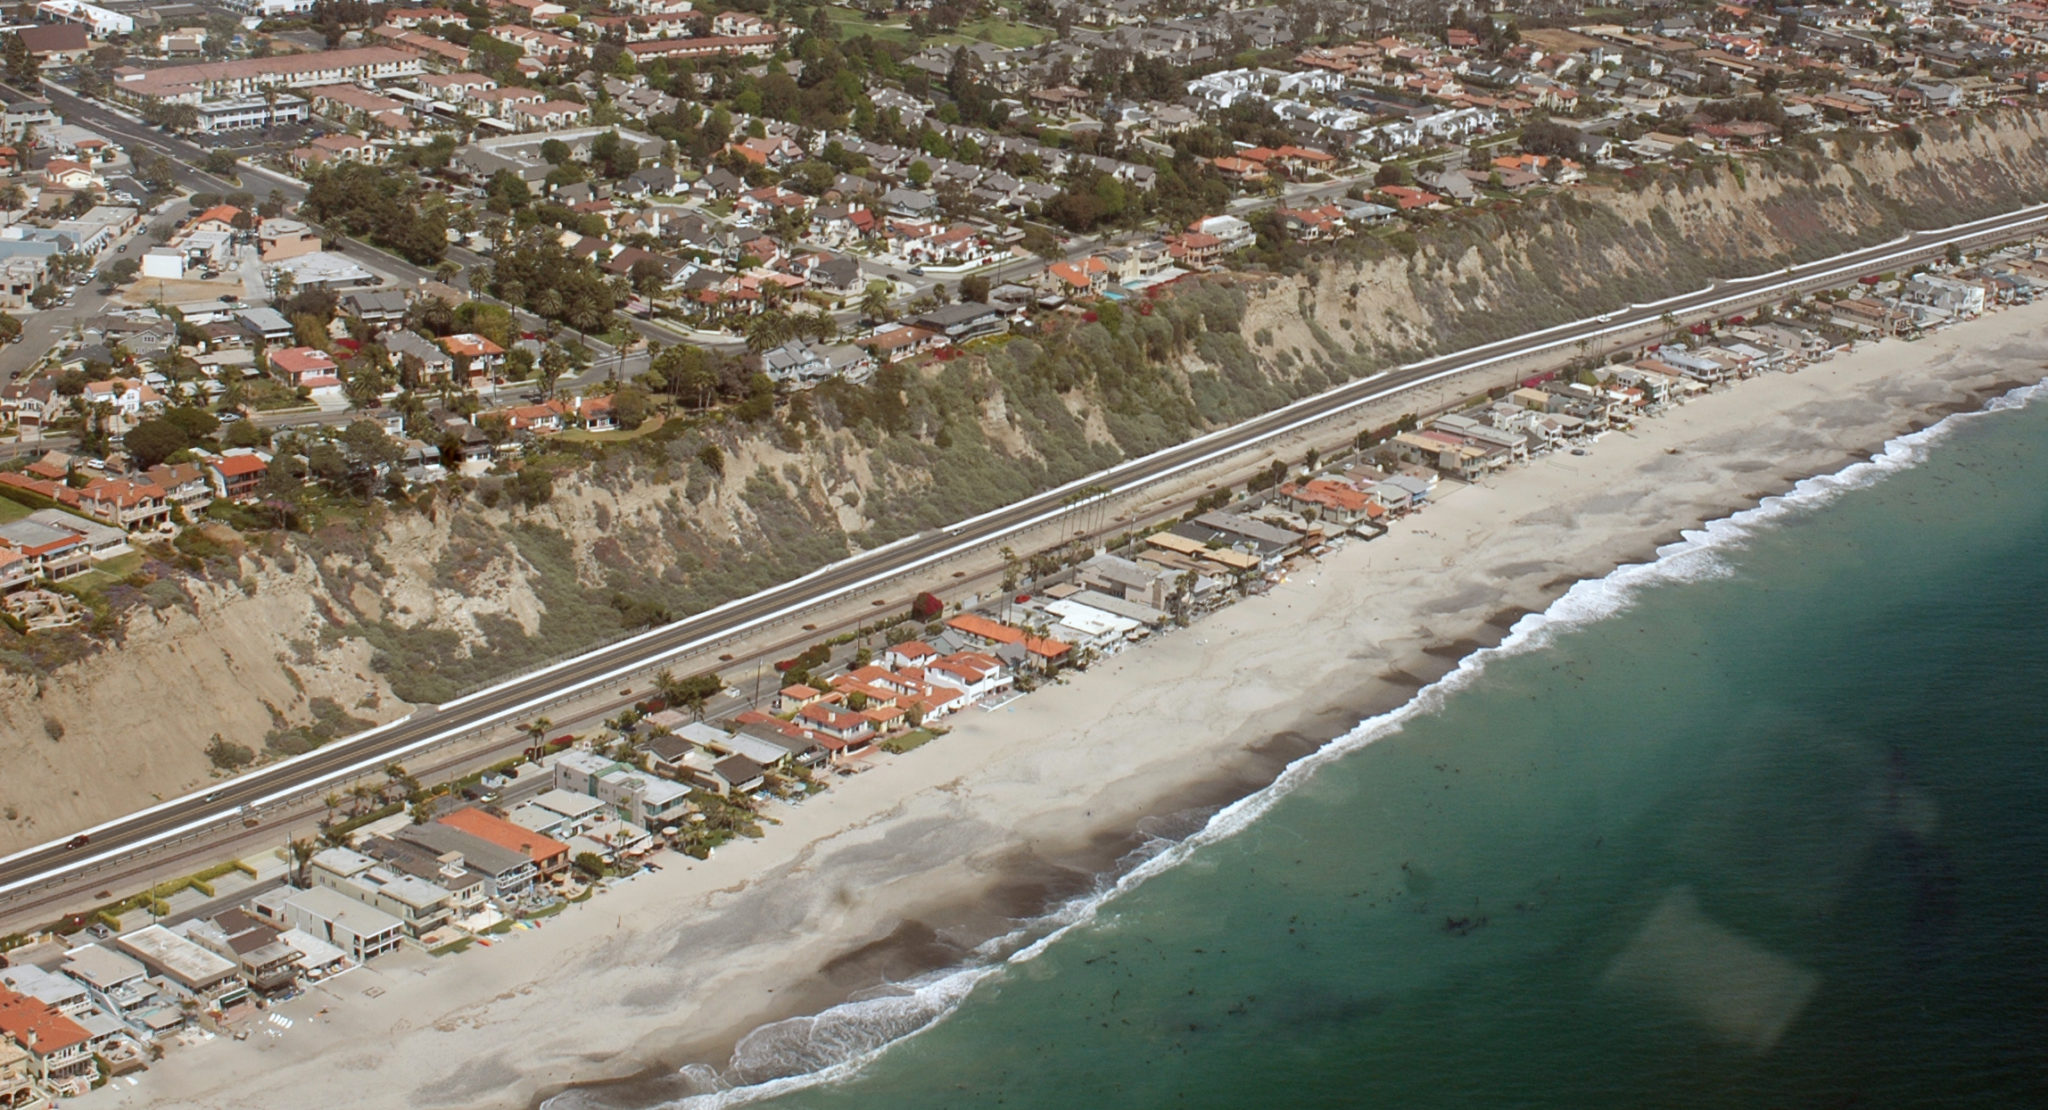 capistrano beach Capistrano beach park 35005 beach road capo beach, ca 92675 (949)923-2280 southcoastops@ocparkscom open: daily 6 am until 10 pm every day parking consists of pay and display parking $1/hour year round.